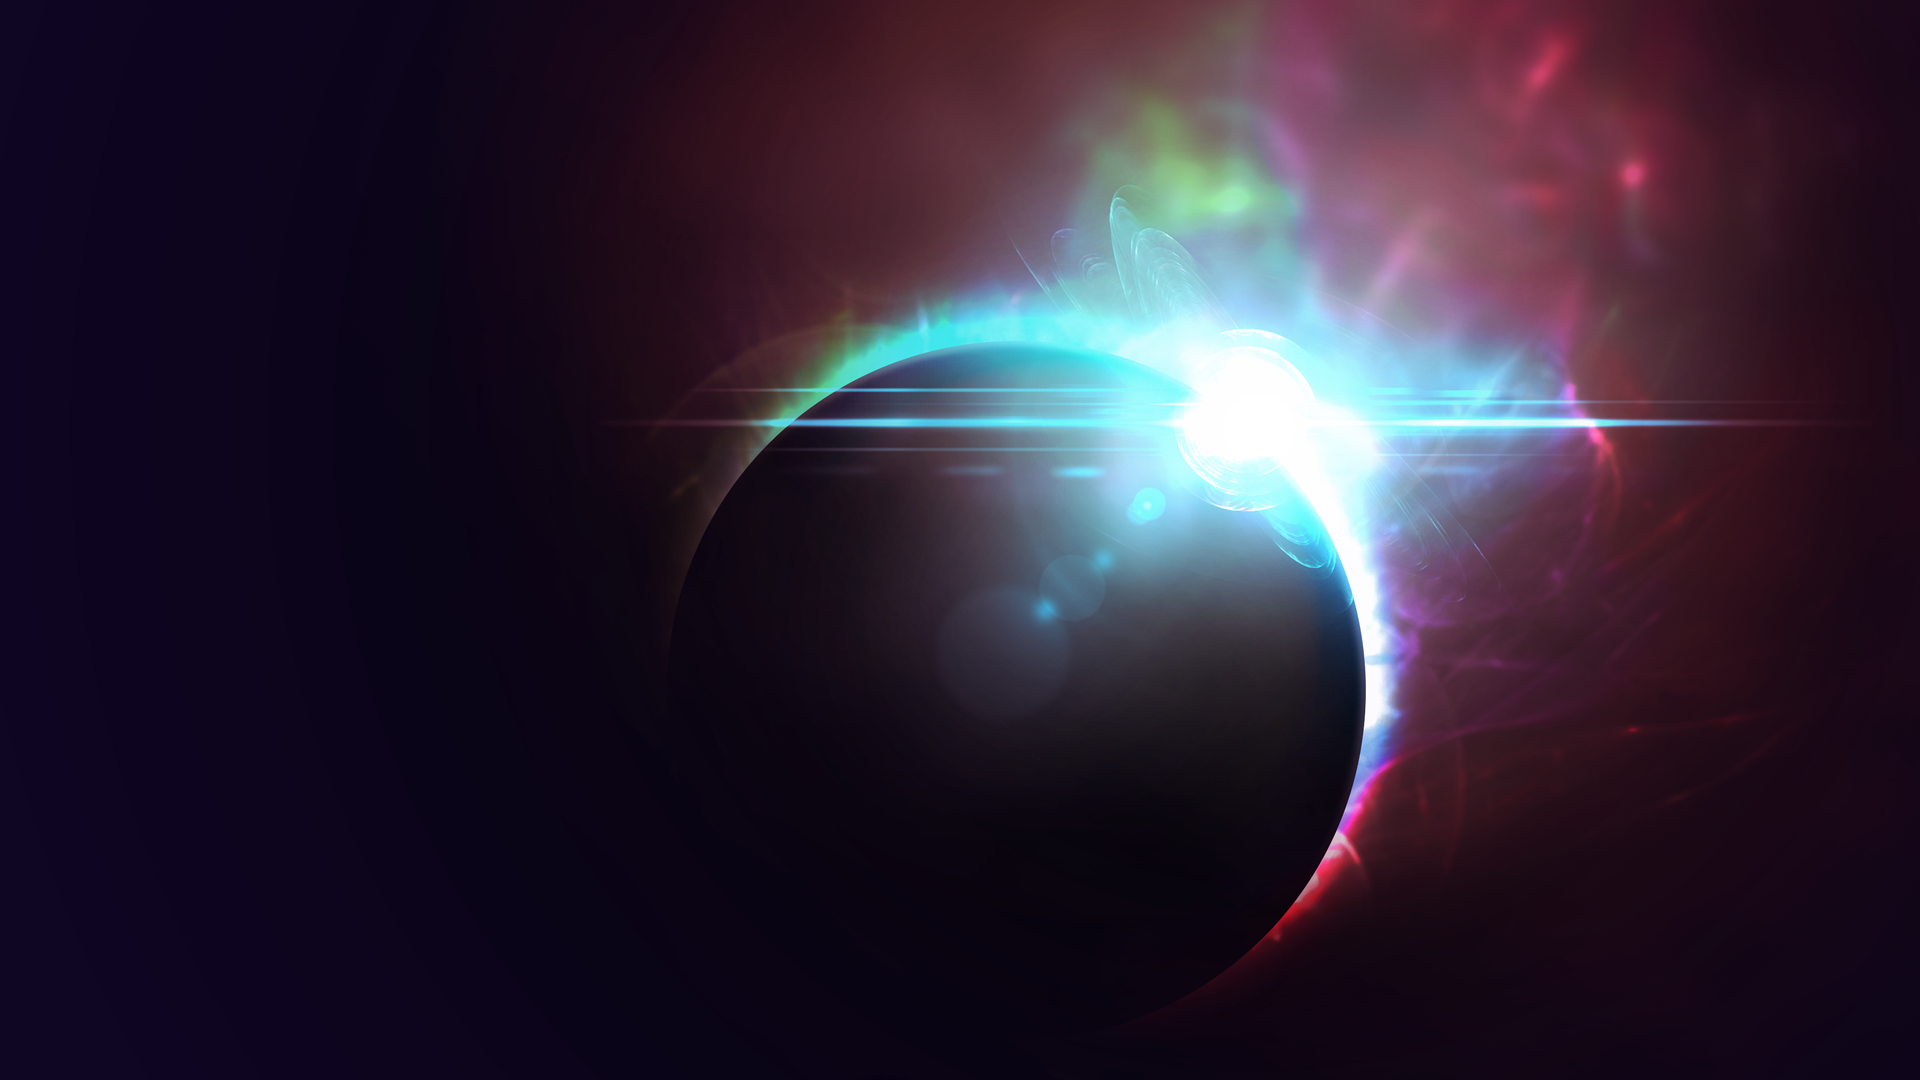 Eclipse (Jacob Greenlee, 0.88 Mb)